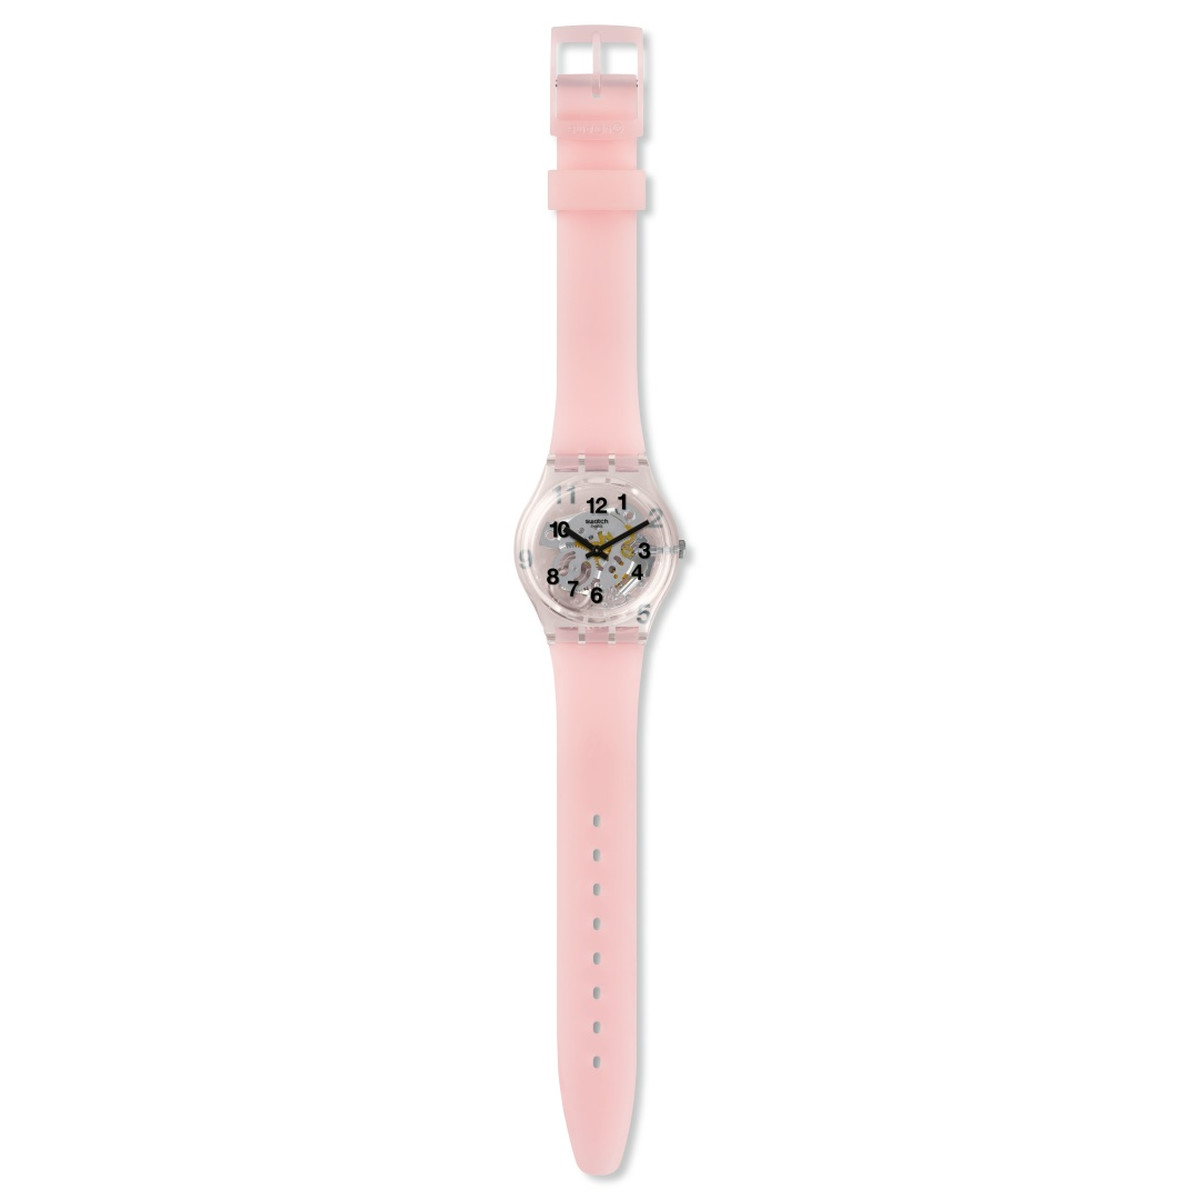 Montre Swatch femme silicone rose - vue VD1